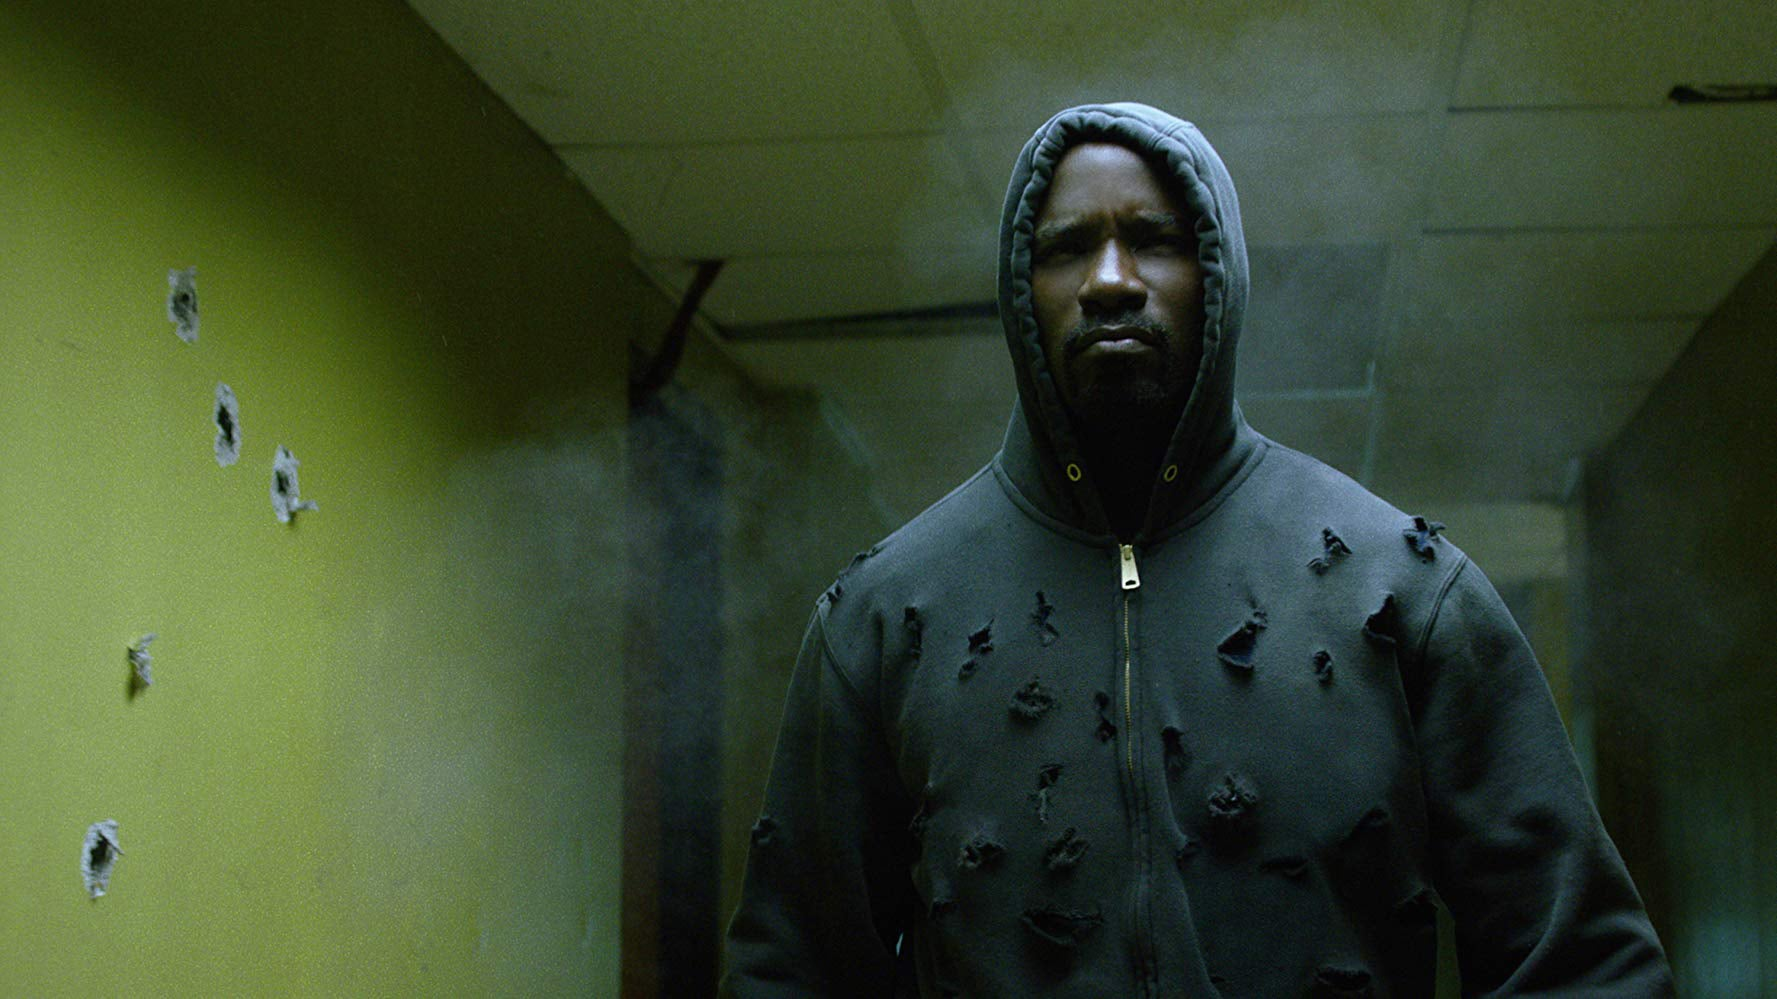 Mike Colter as Luke Cage, striding toward the camera in a hoodie that has been shot to pieces.